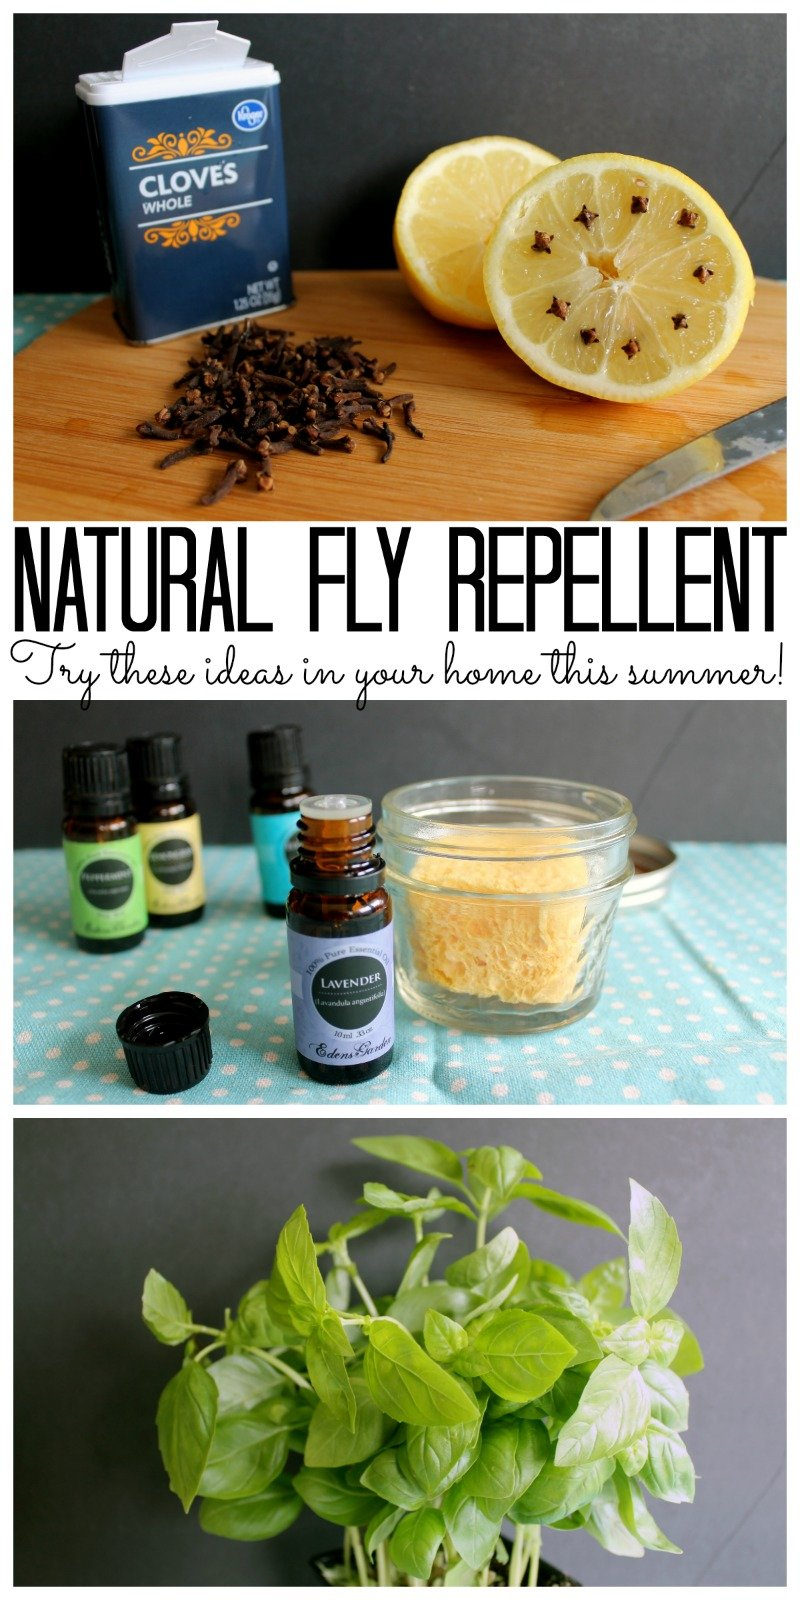 Try these natural fly repellent ideas for your home this summer!